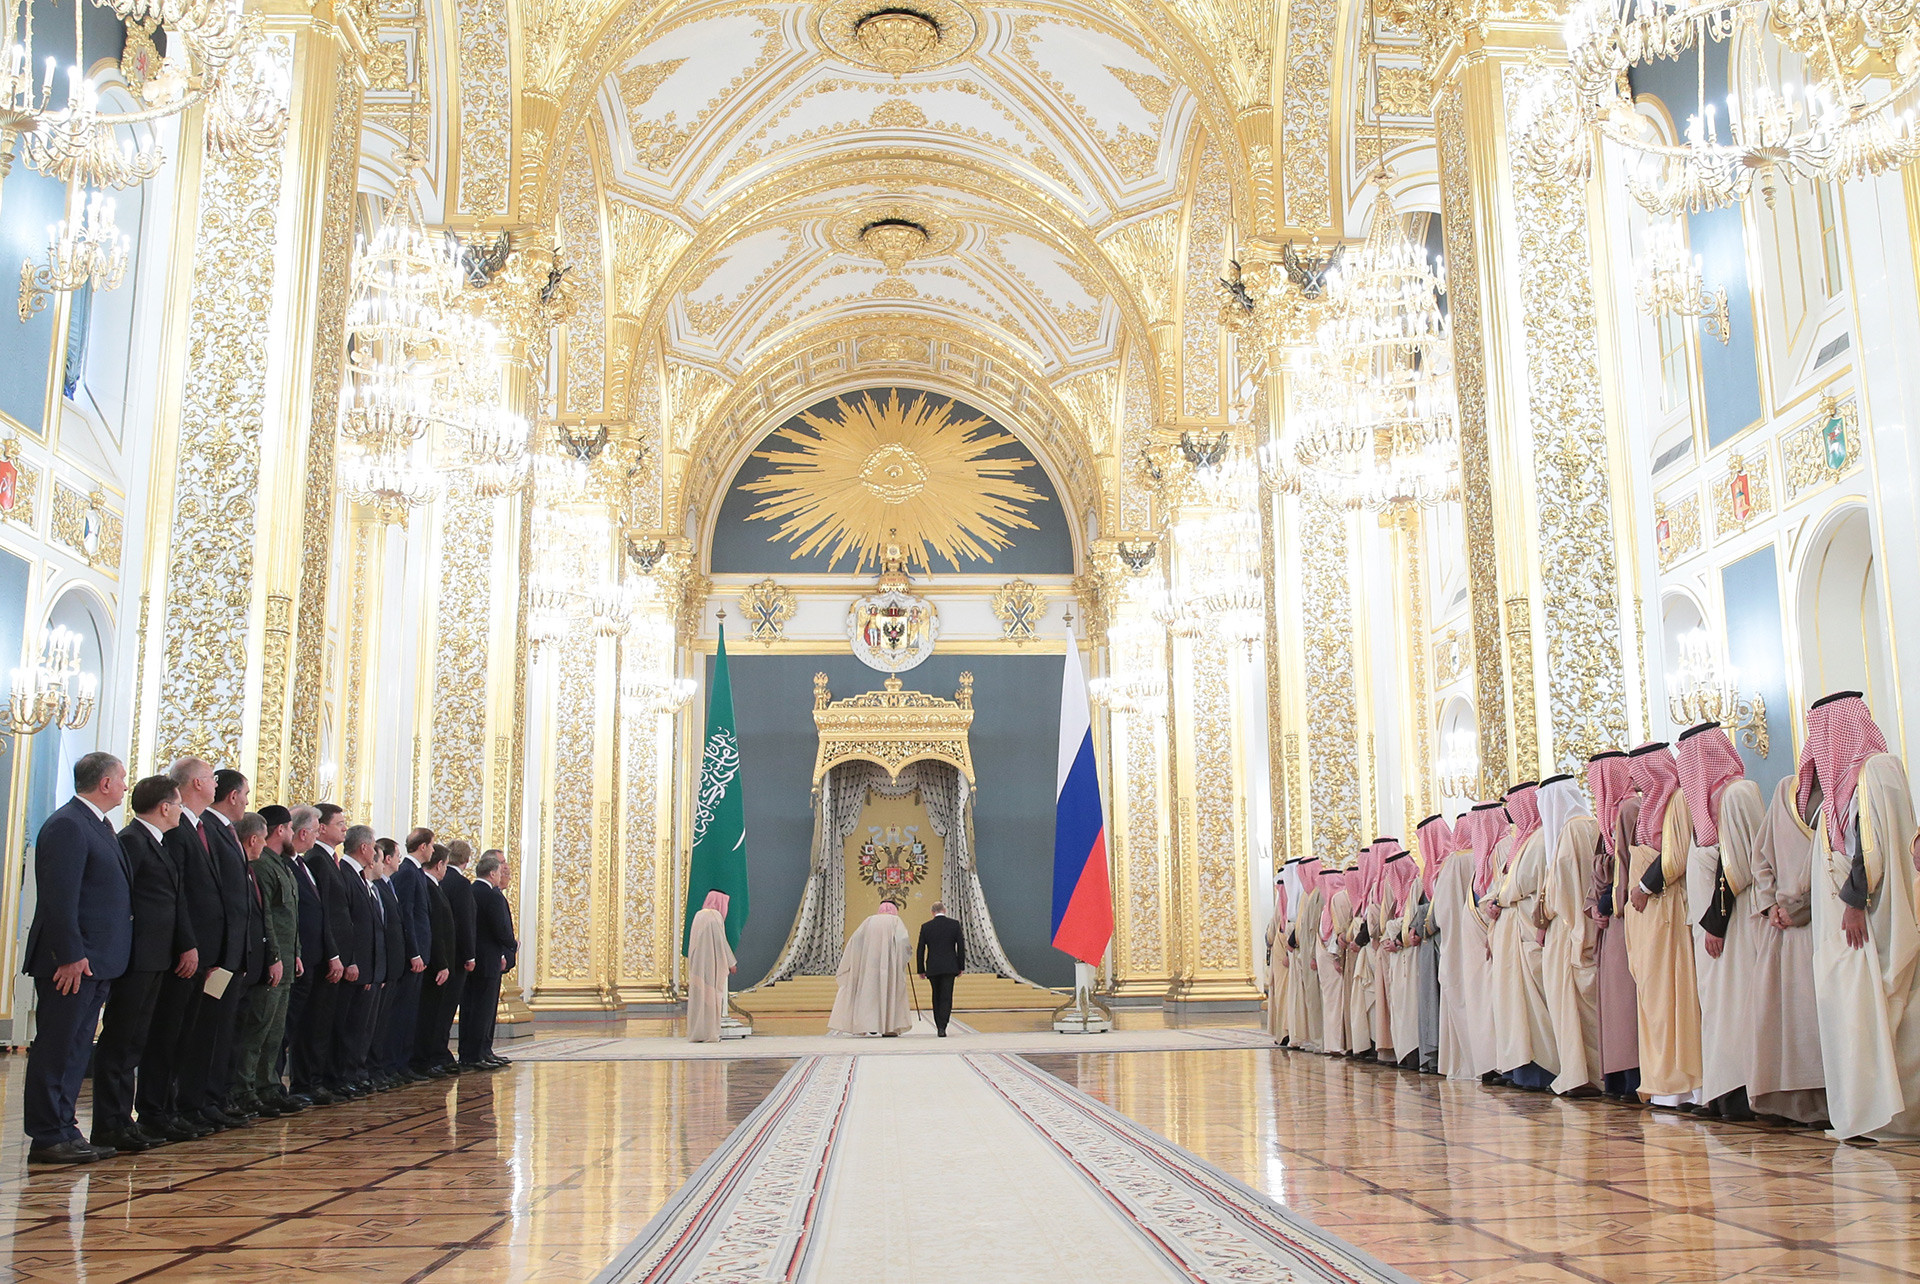 Andreyevsky hall of the Kremlin Palace